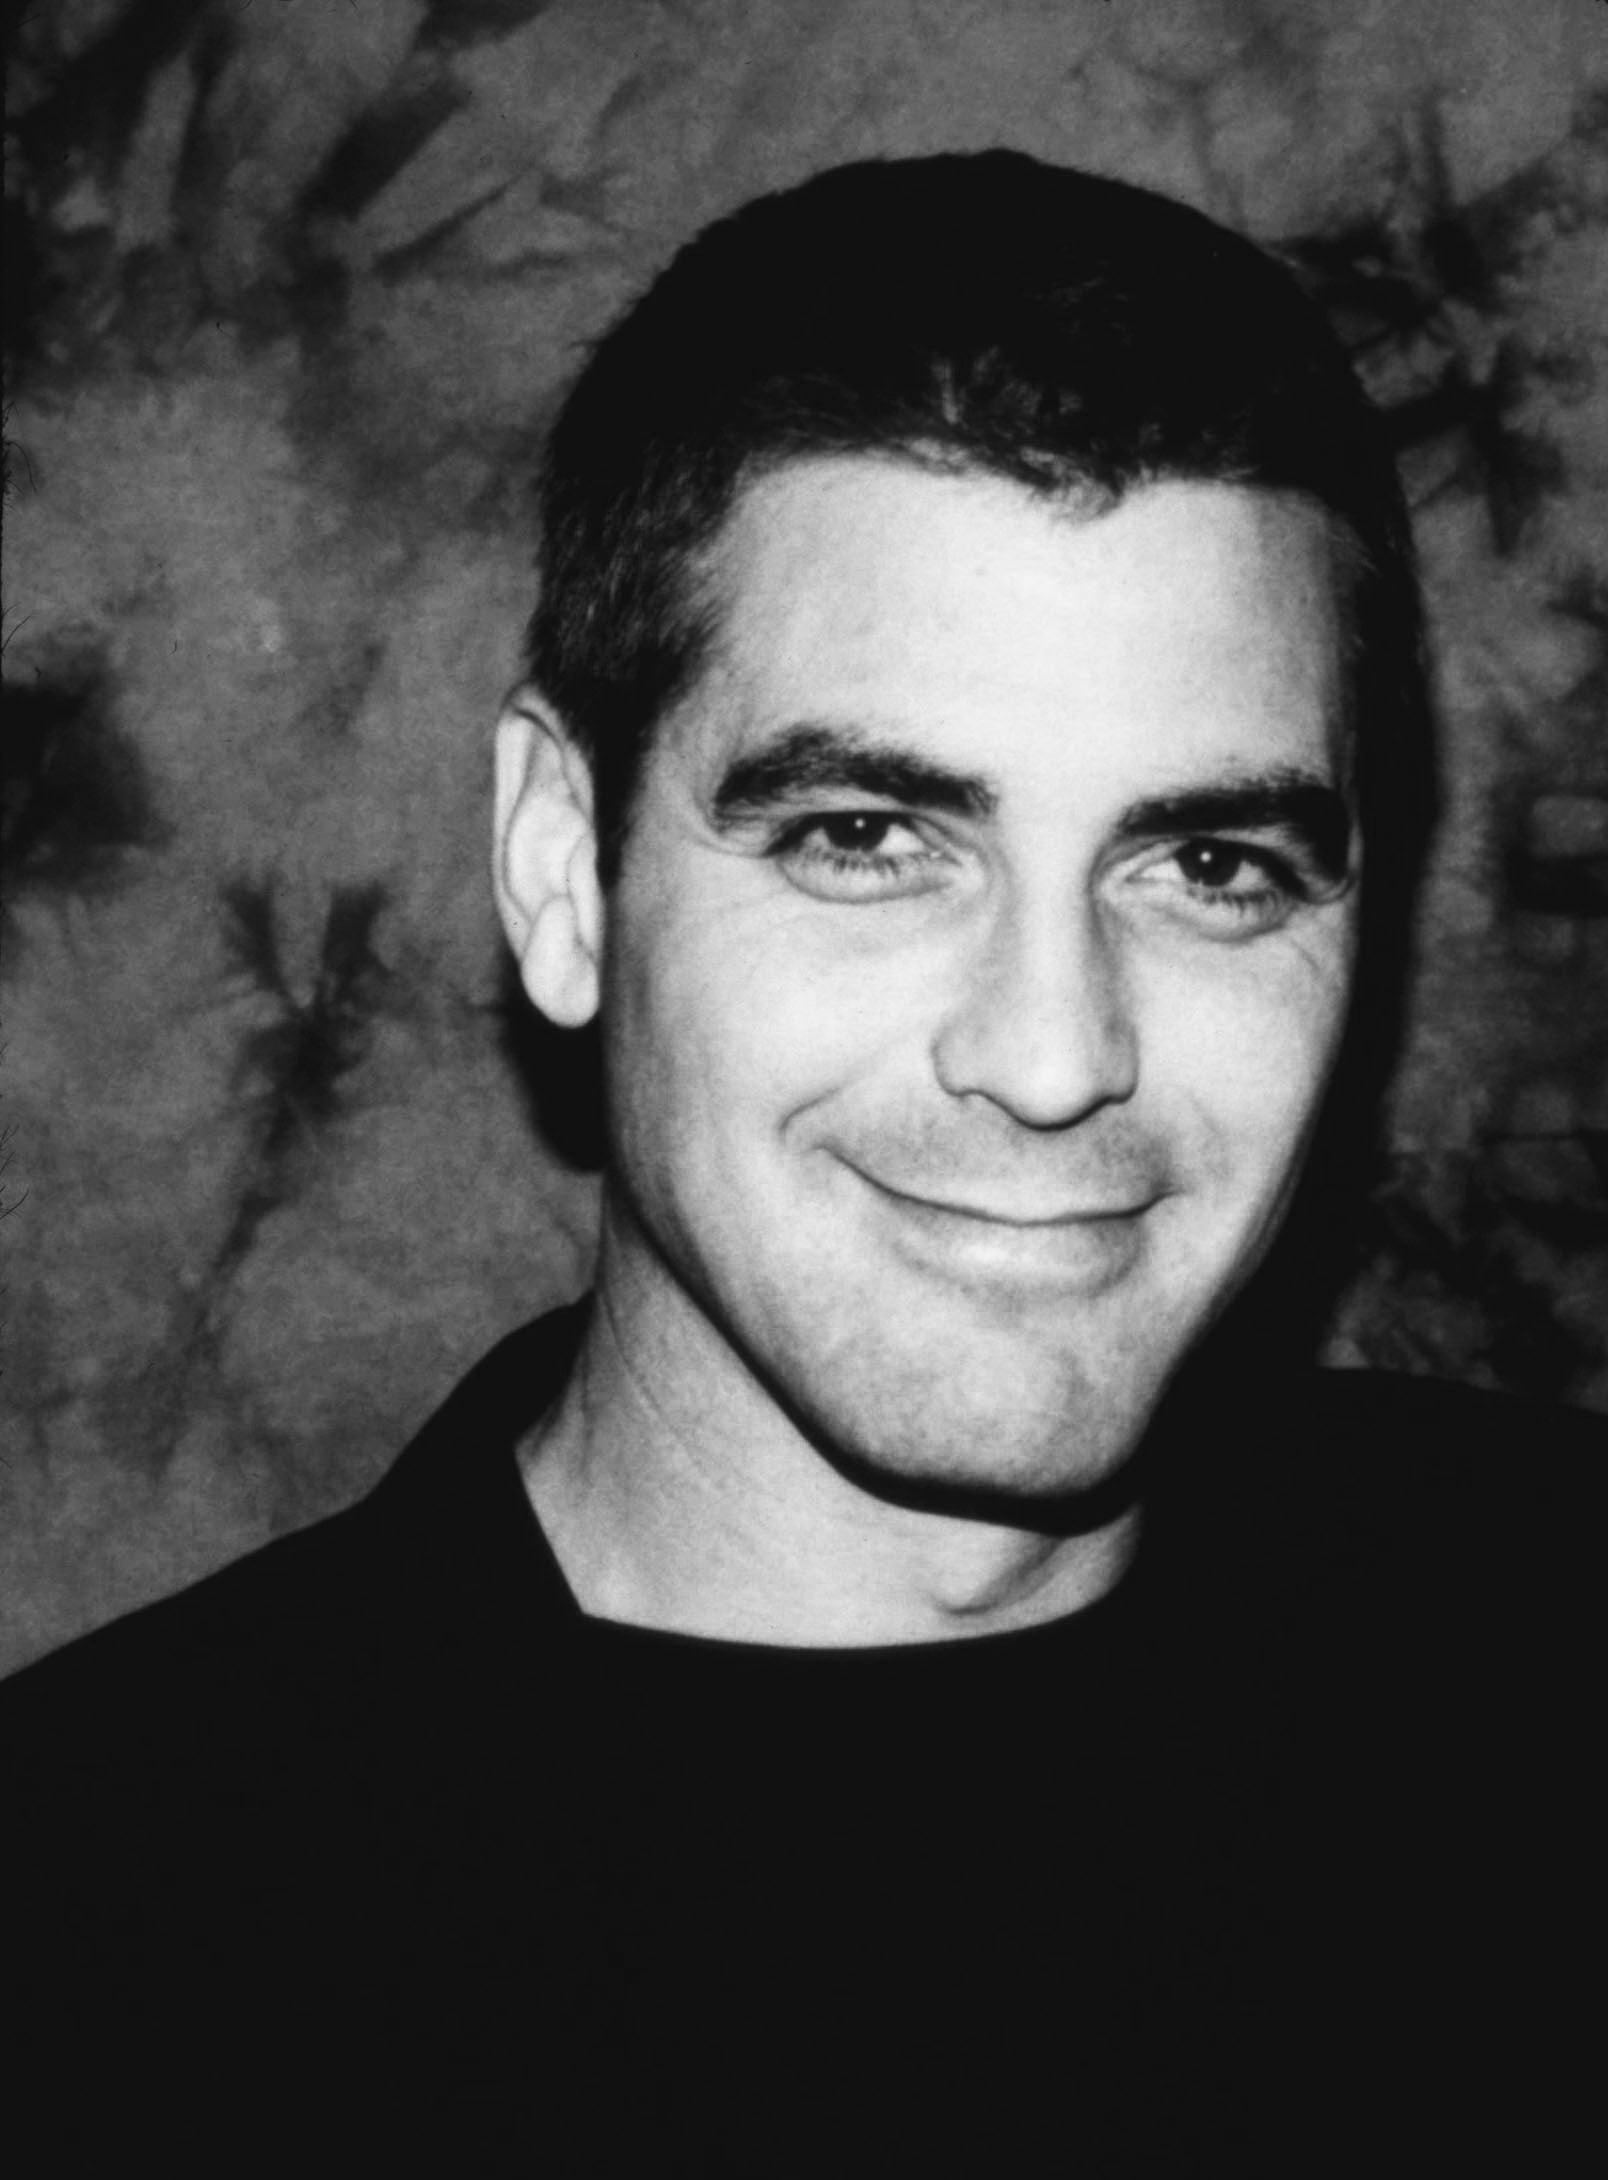 Actor, director and producer George Clooney, Cecil B. deMille award recipient